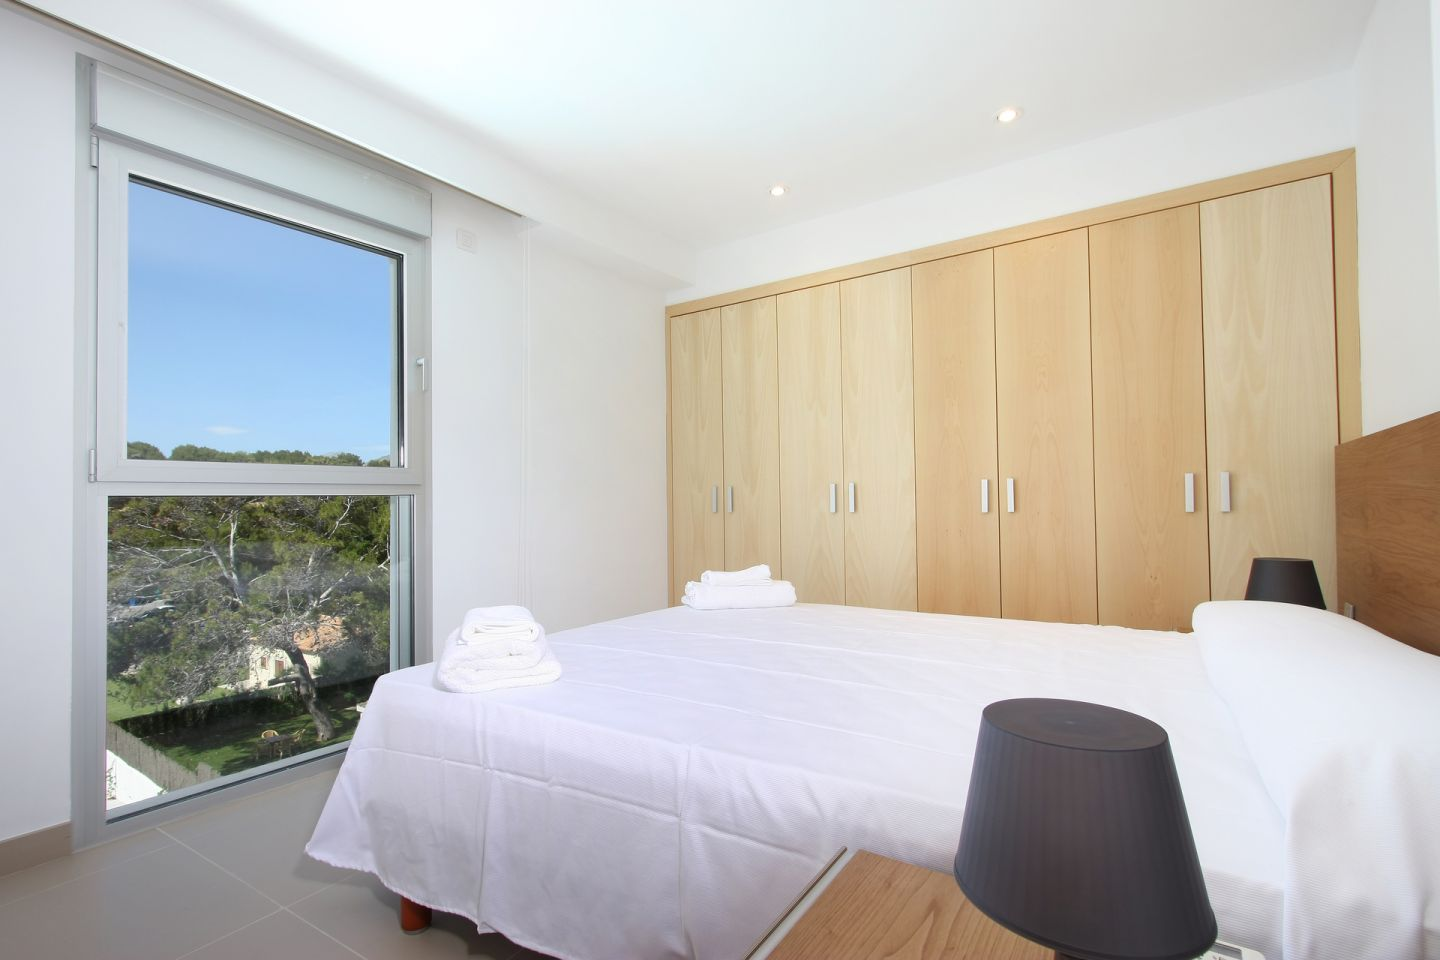 2 Bed Other for sale in Cala San Vicente 9